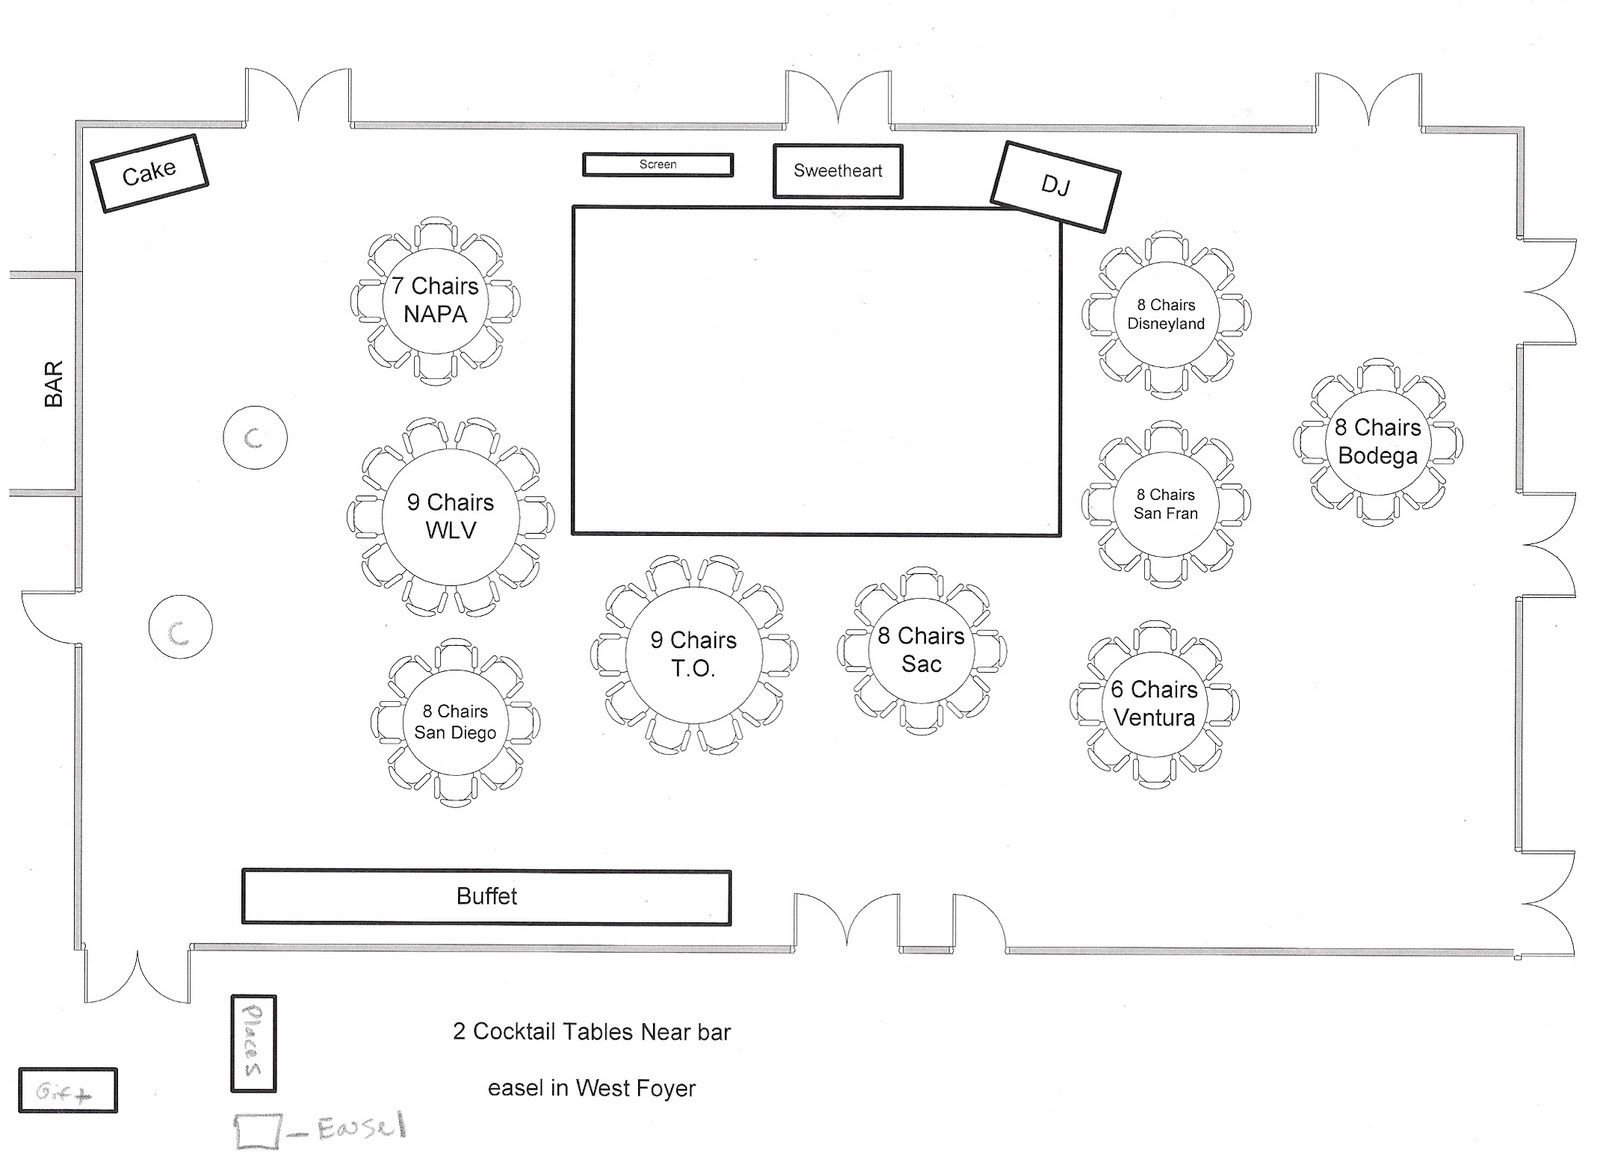 Sample seating diagram and floor plan for Floor function example